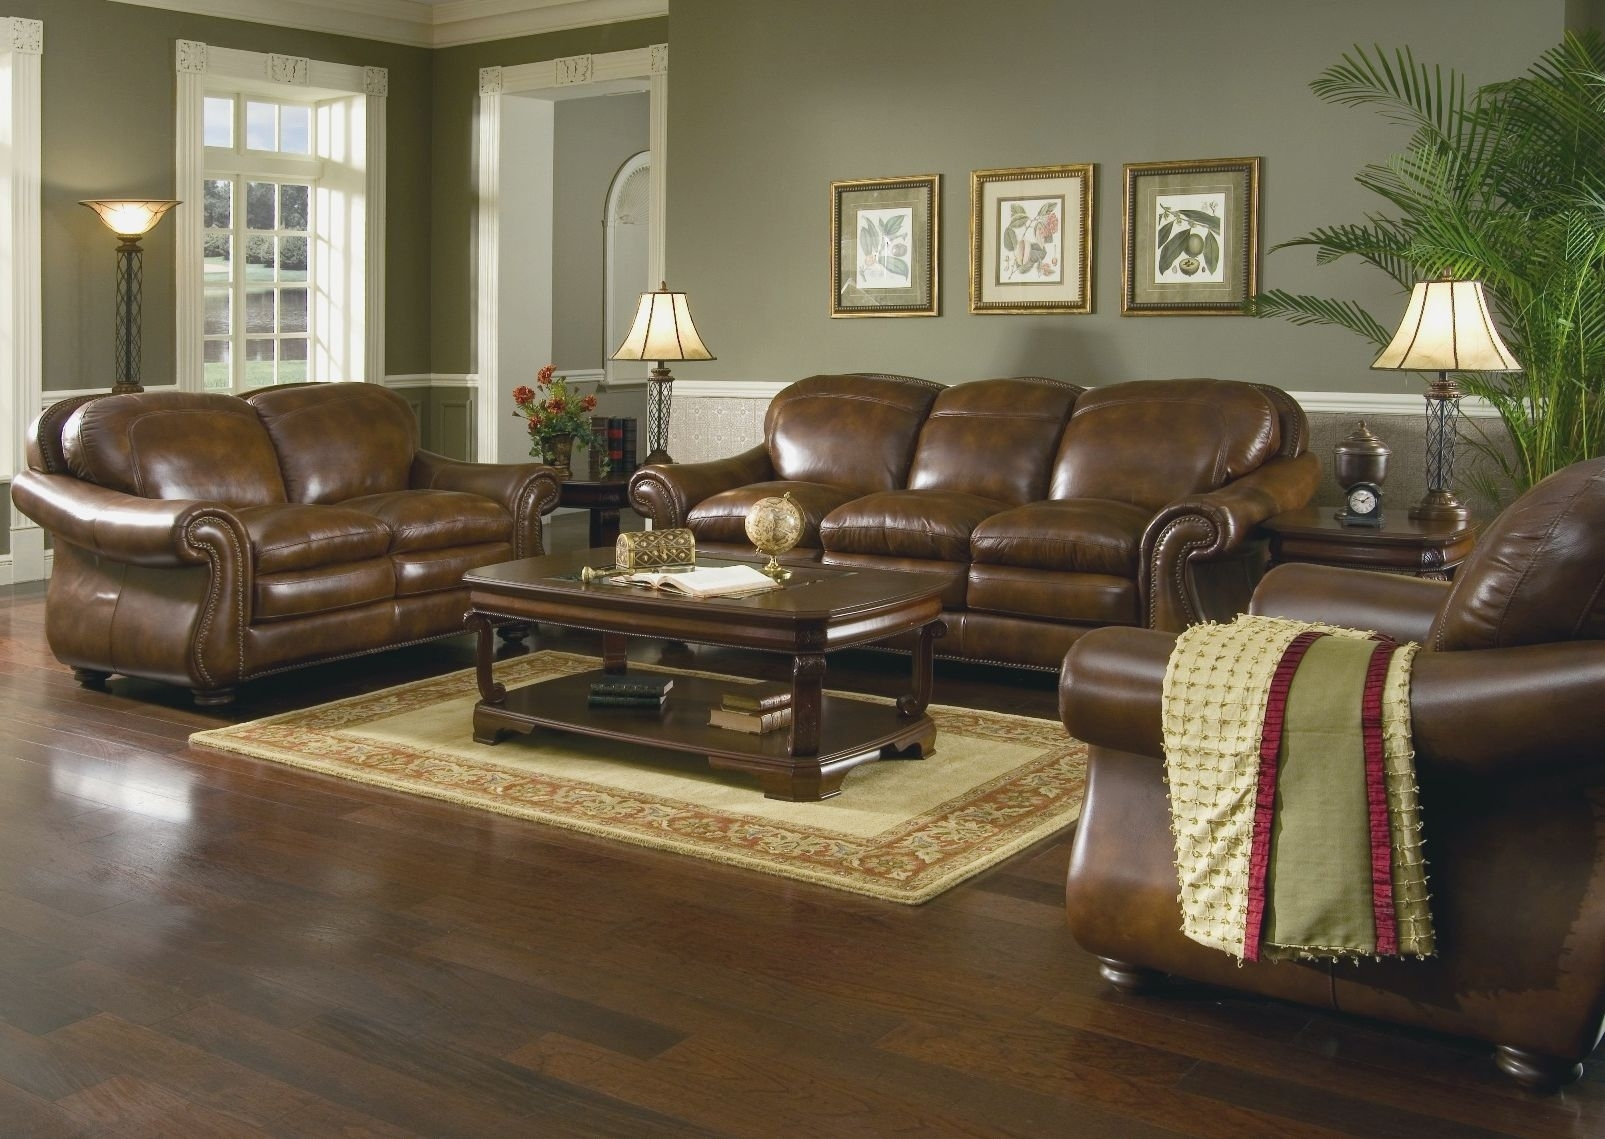 Living Room : Dark Brown Couch Living Room Decor Relaxed Modern Regarding Latest Brown Couch Wall Accents (View 9 of 15)